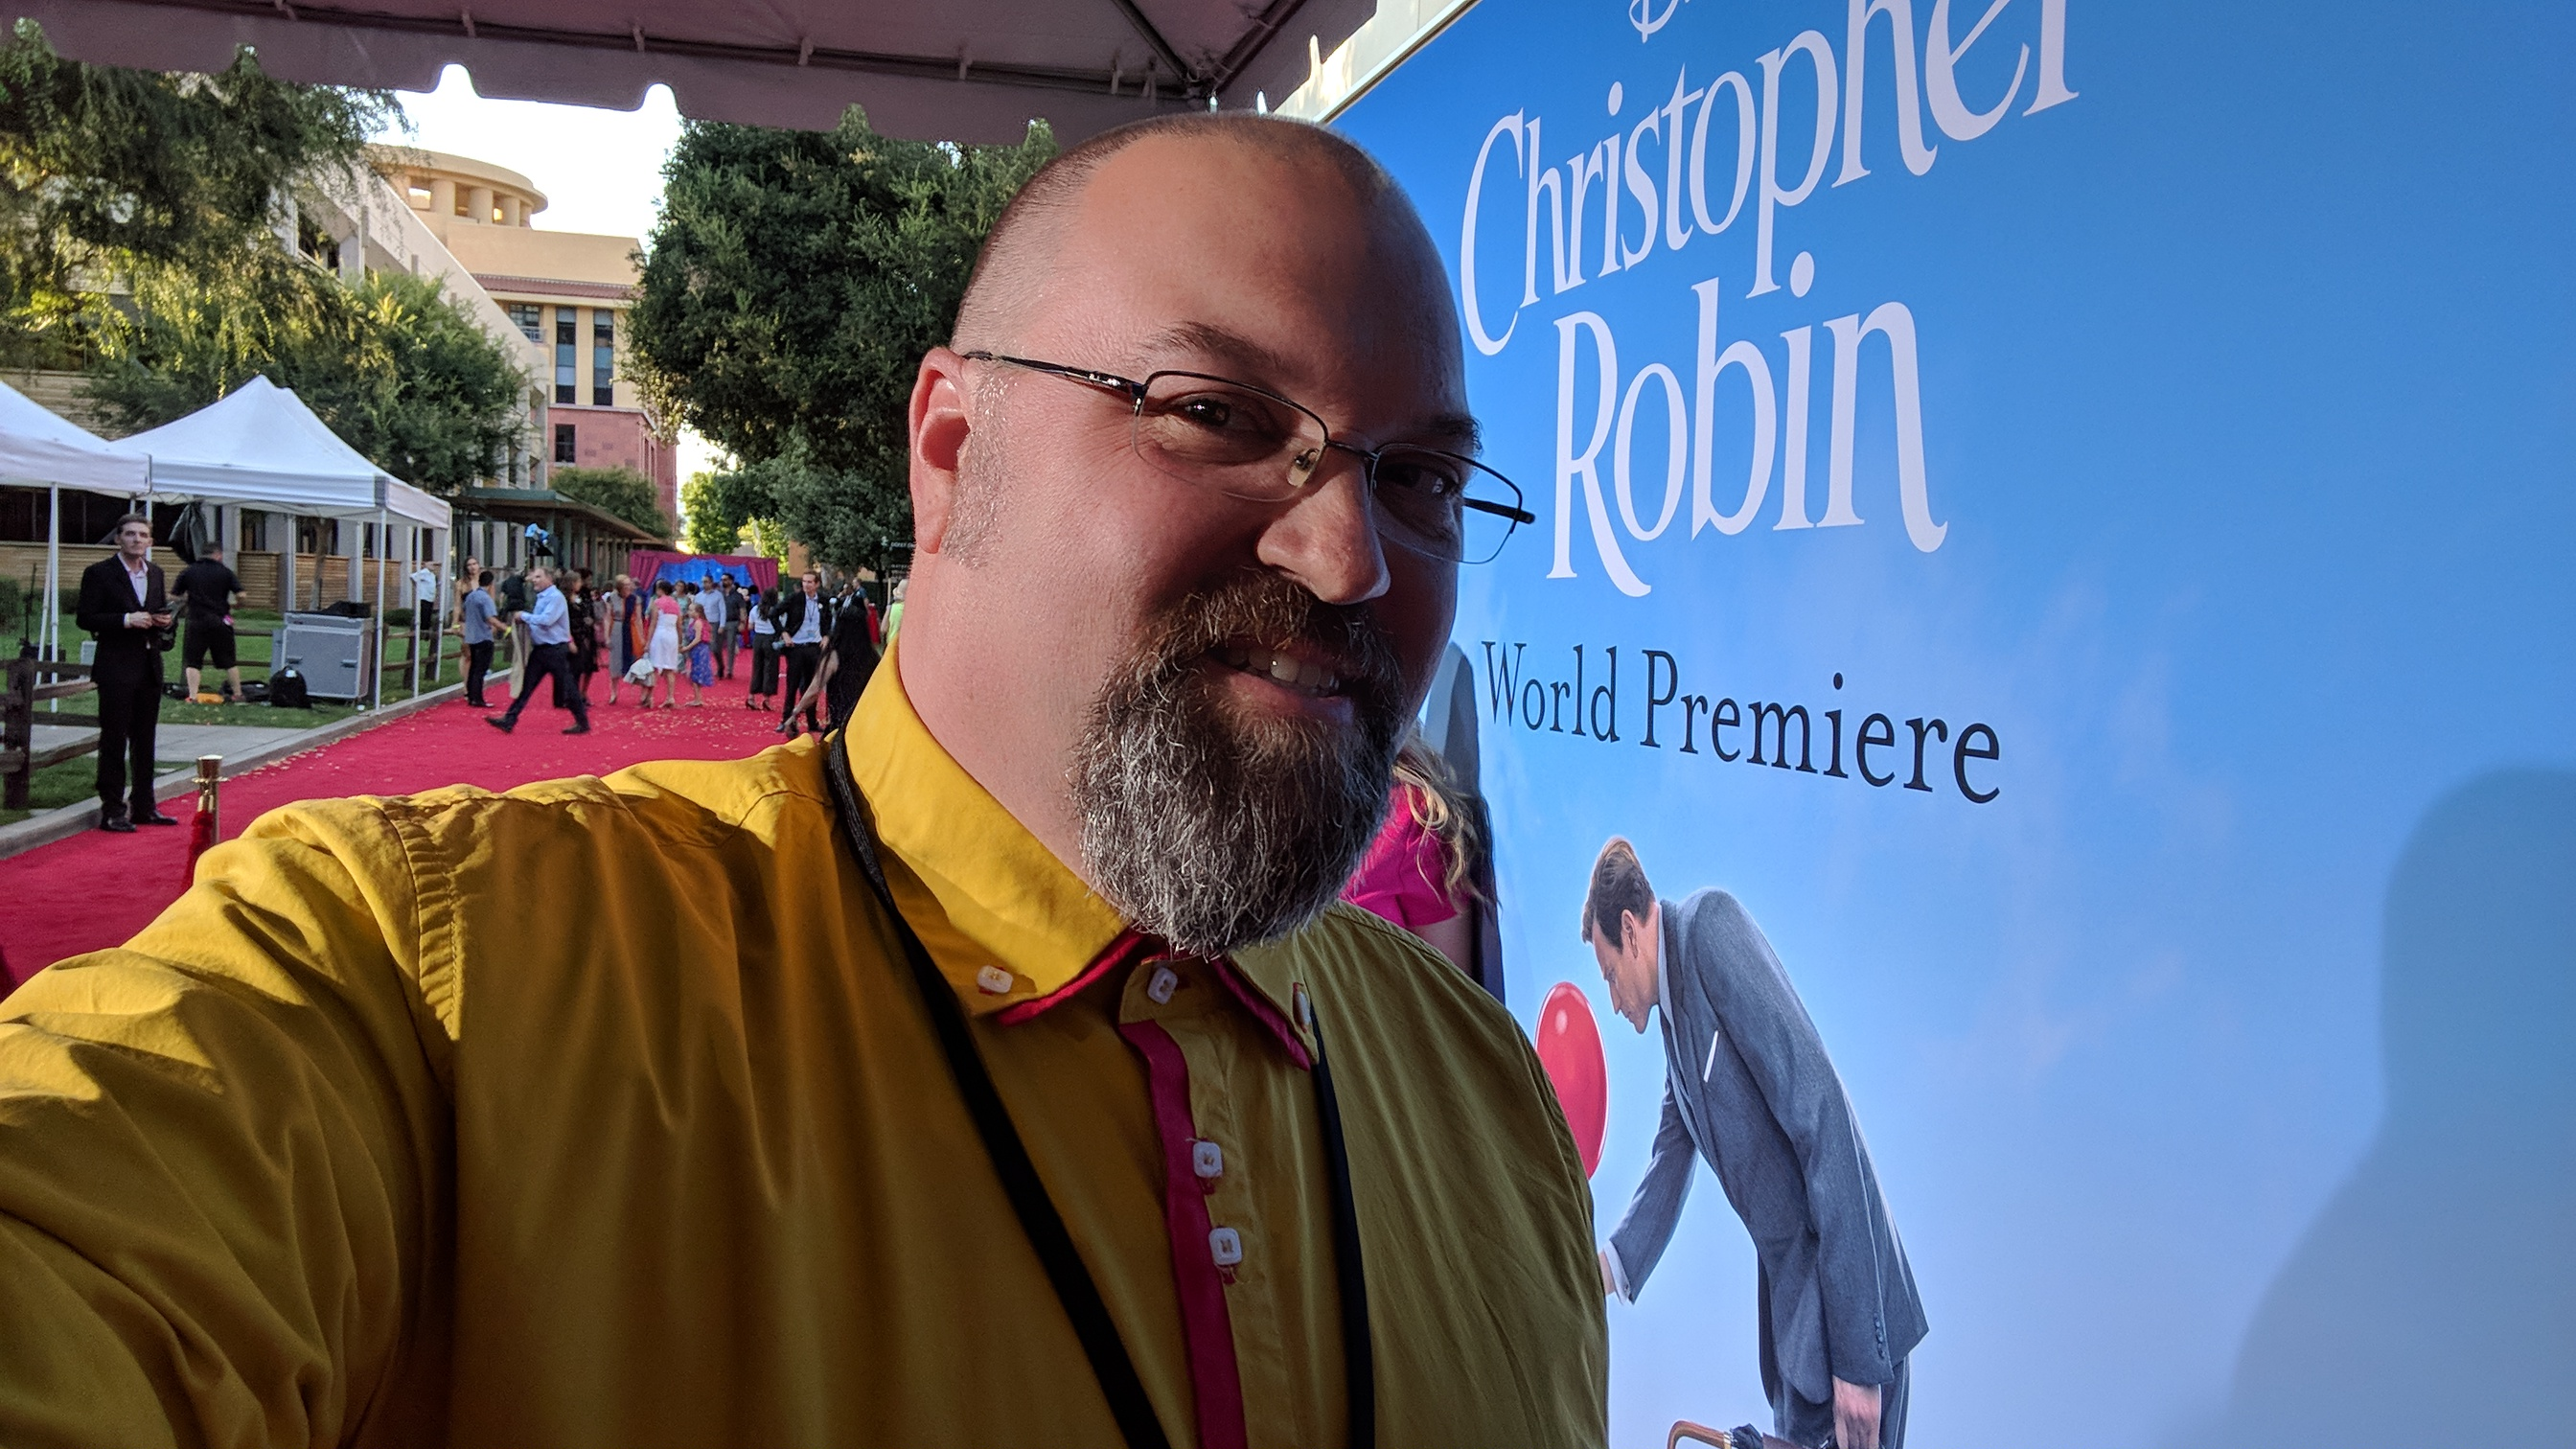 Walking the Christopher Robin Red Carpet